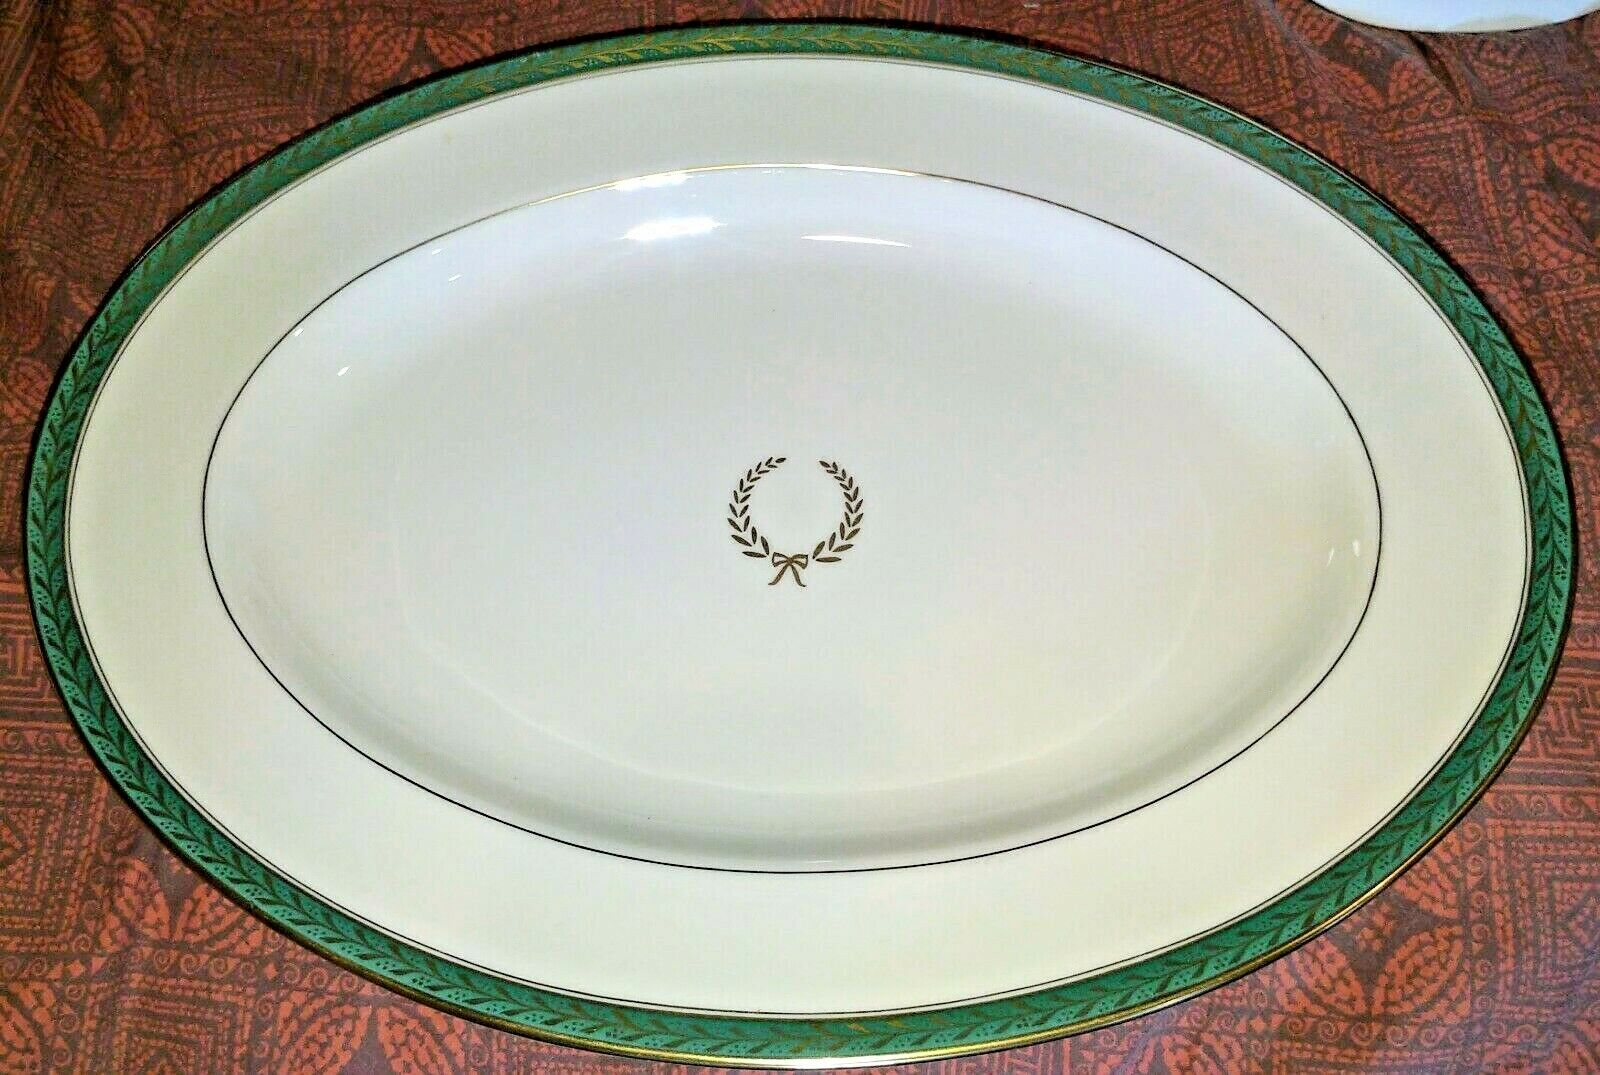 15 Oval Serving Platter Josephine Green By PICKARD - $30.00